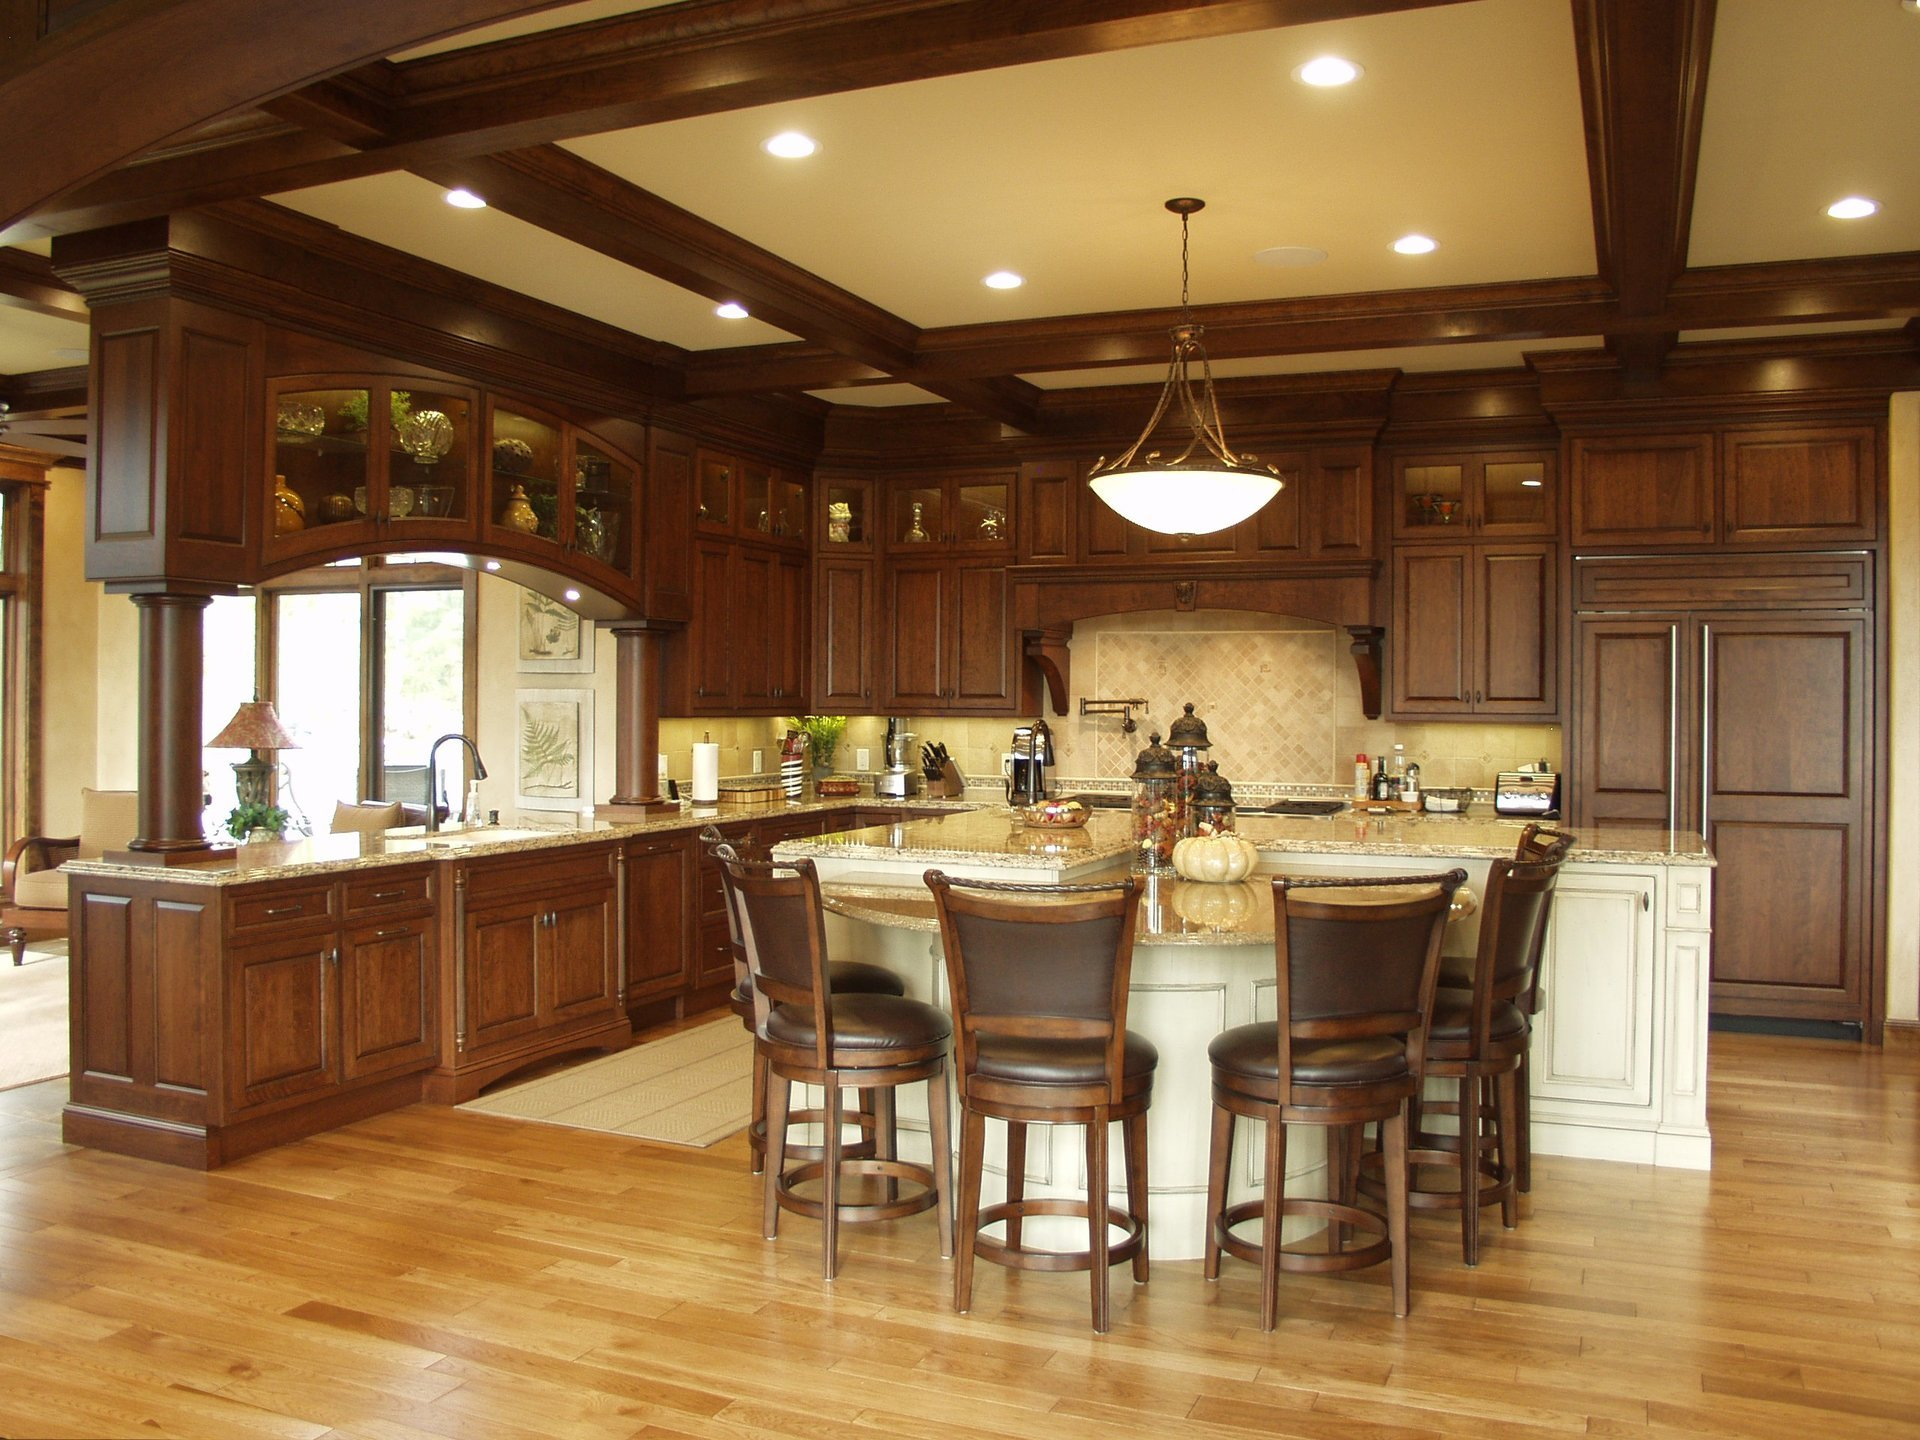 Featherstone Cabinetry & Design image 5